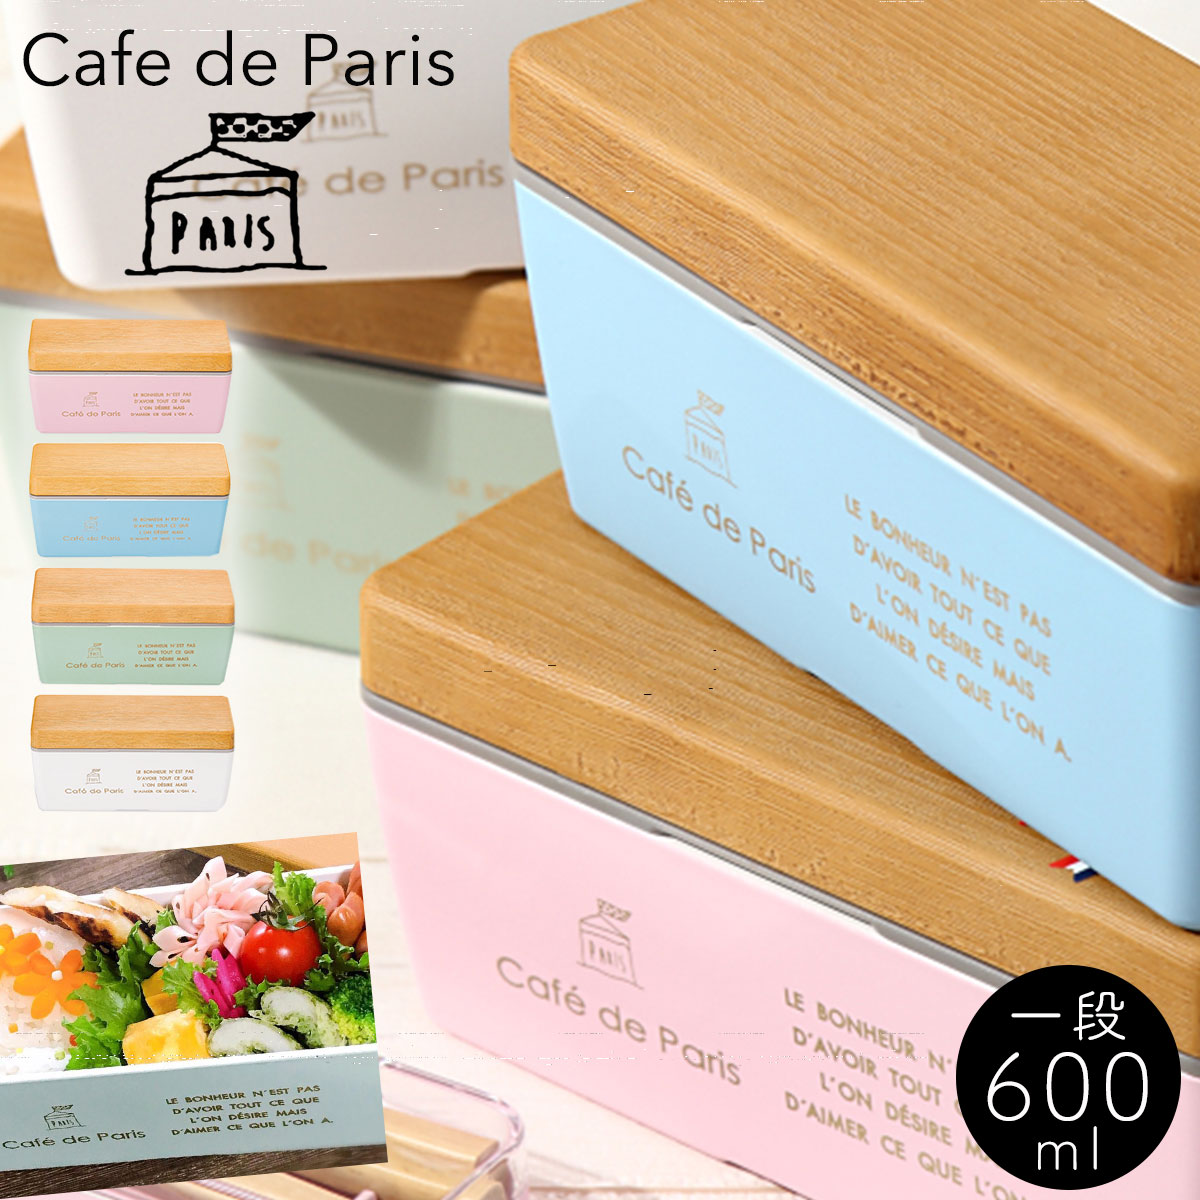 PARIS 木目BCランチS cafe de Paris